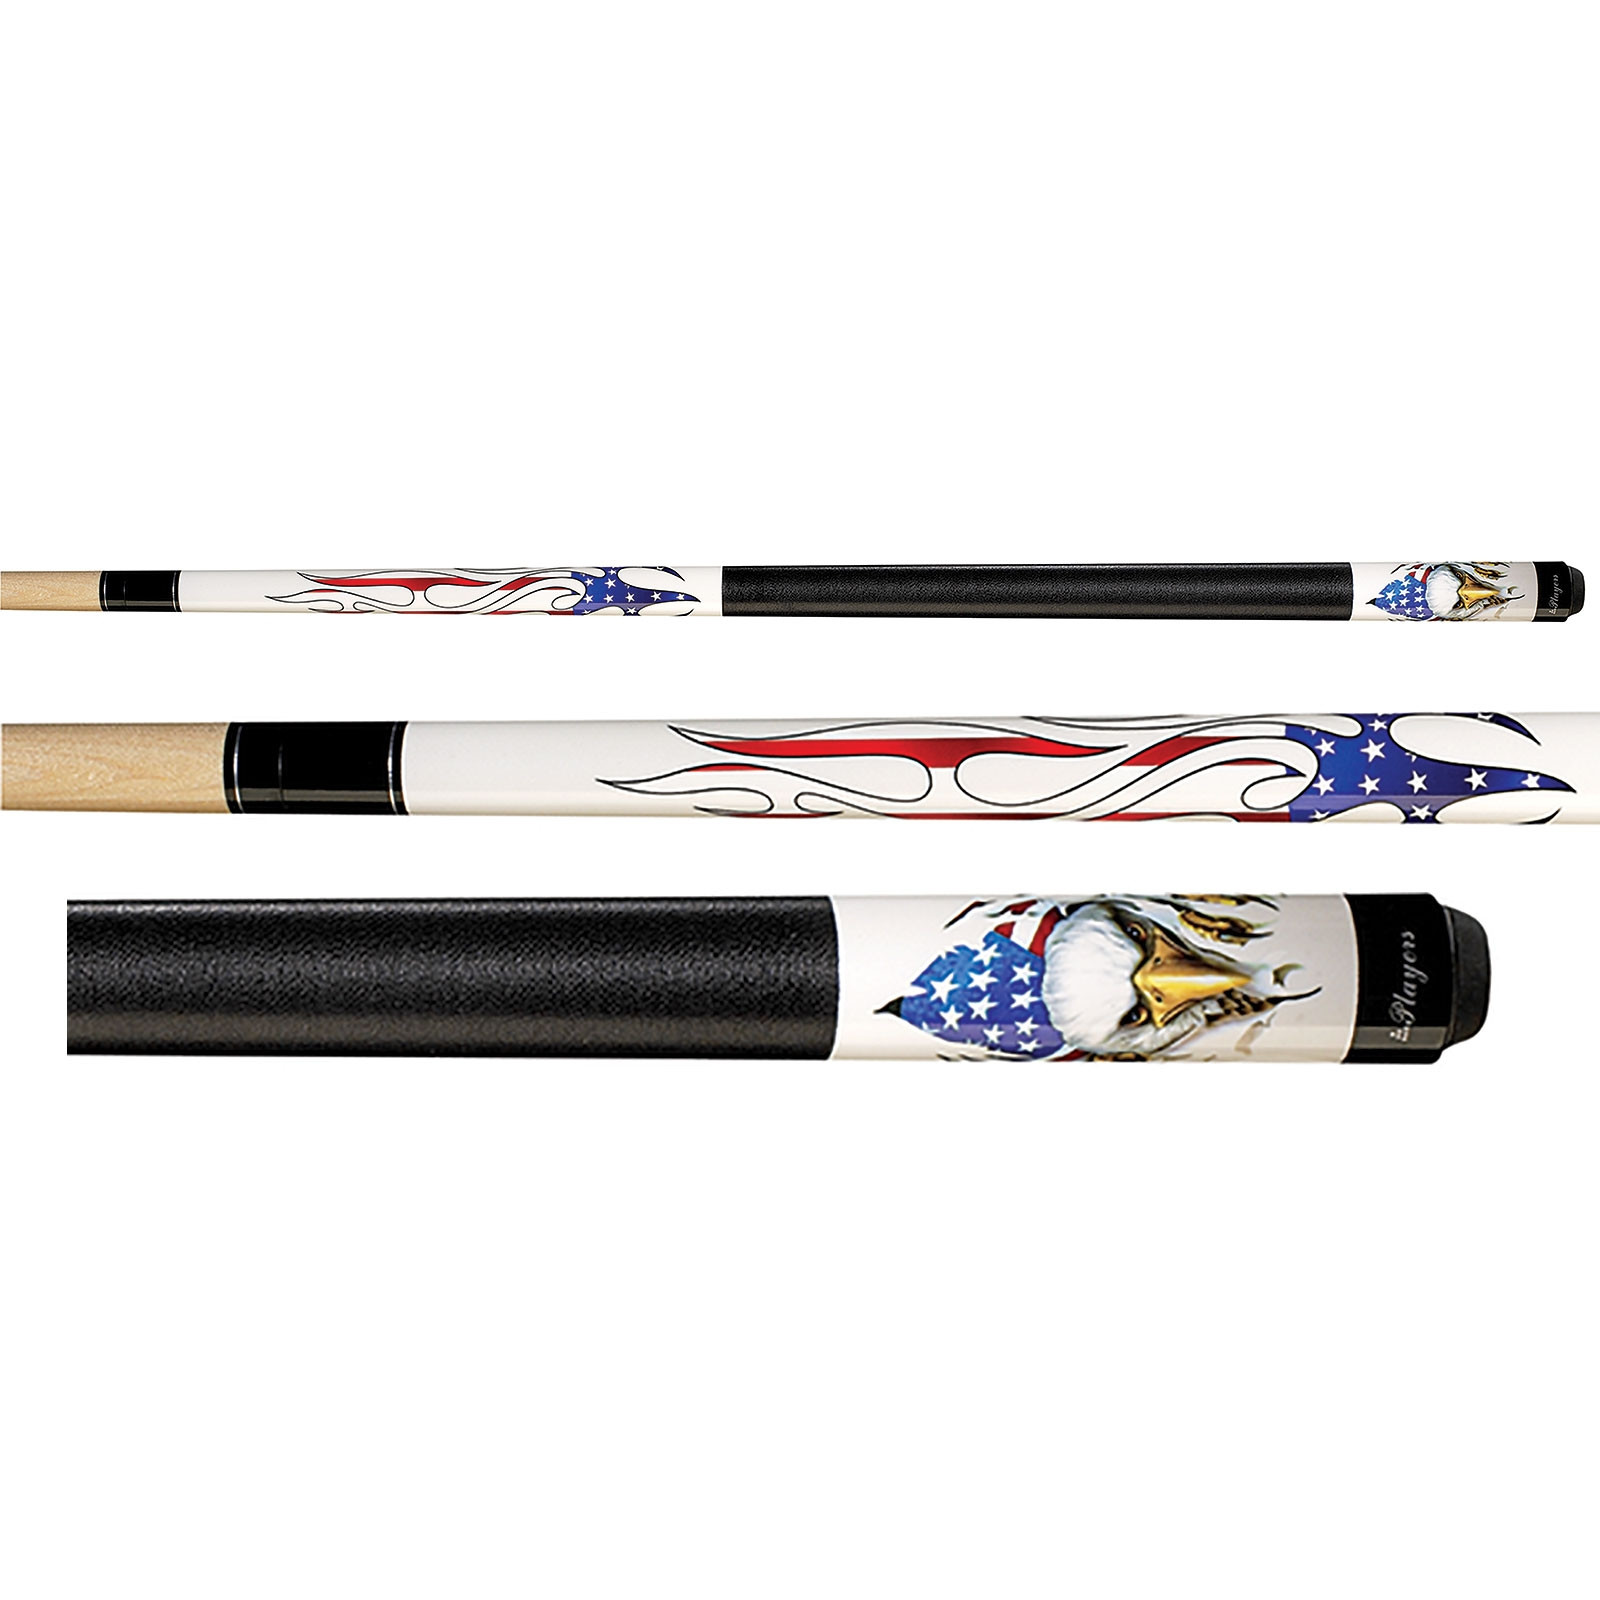 Players D-PEG Screaming Eagle Graphic Pool Cue Stick